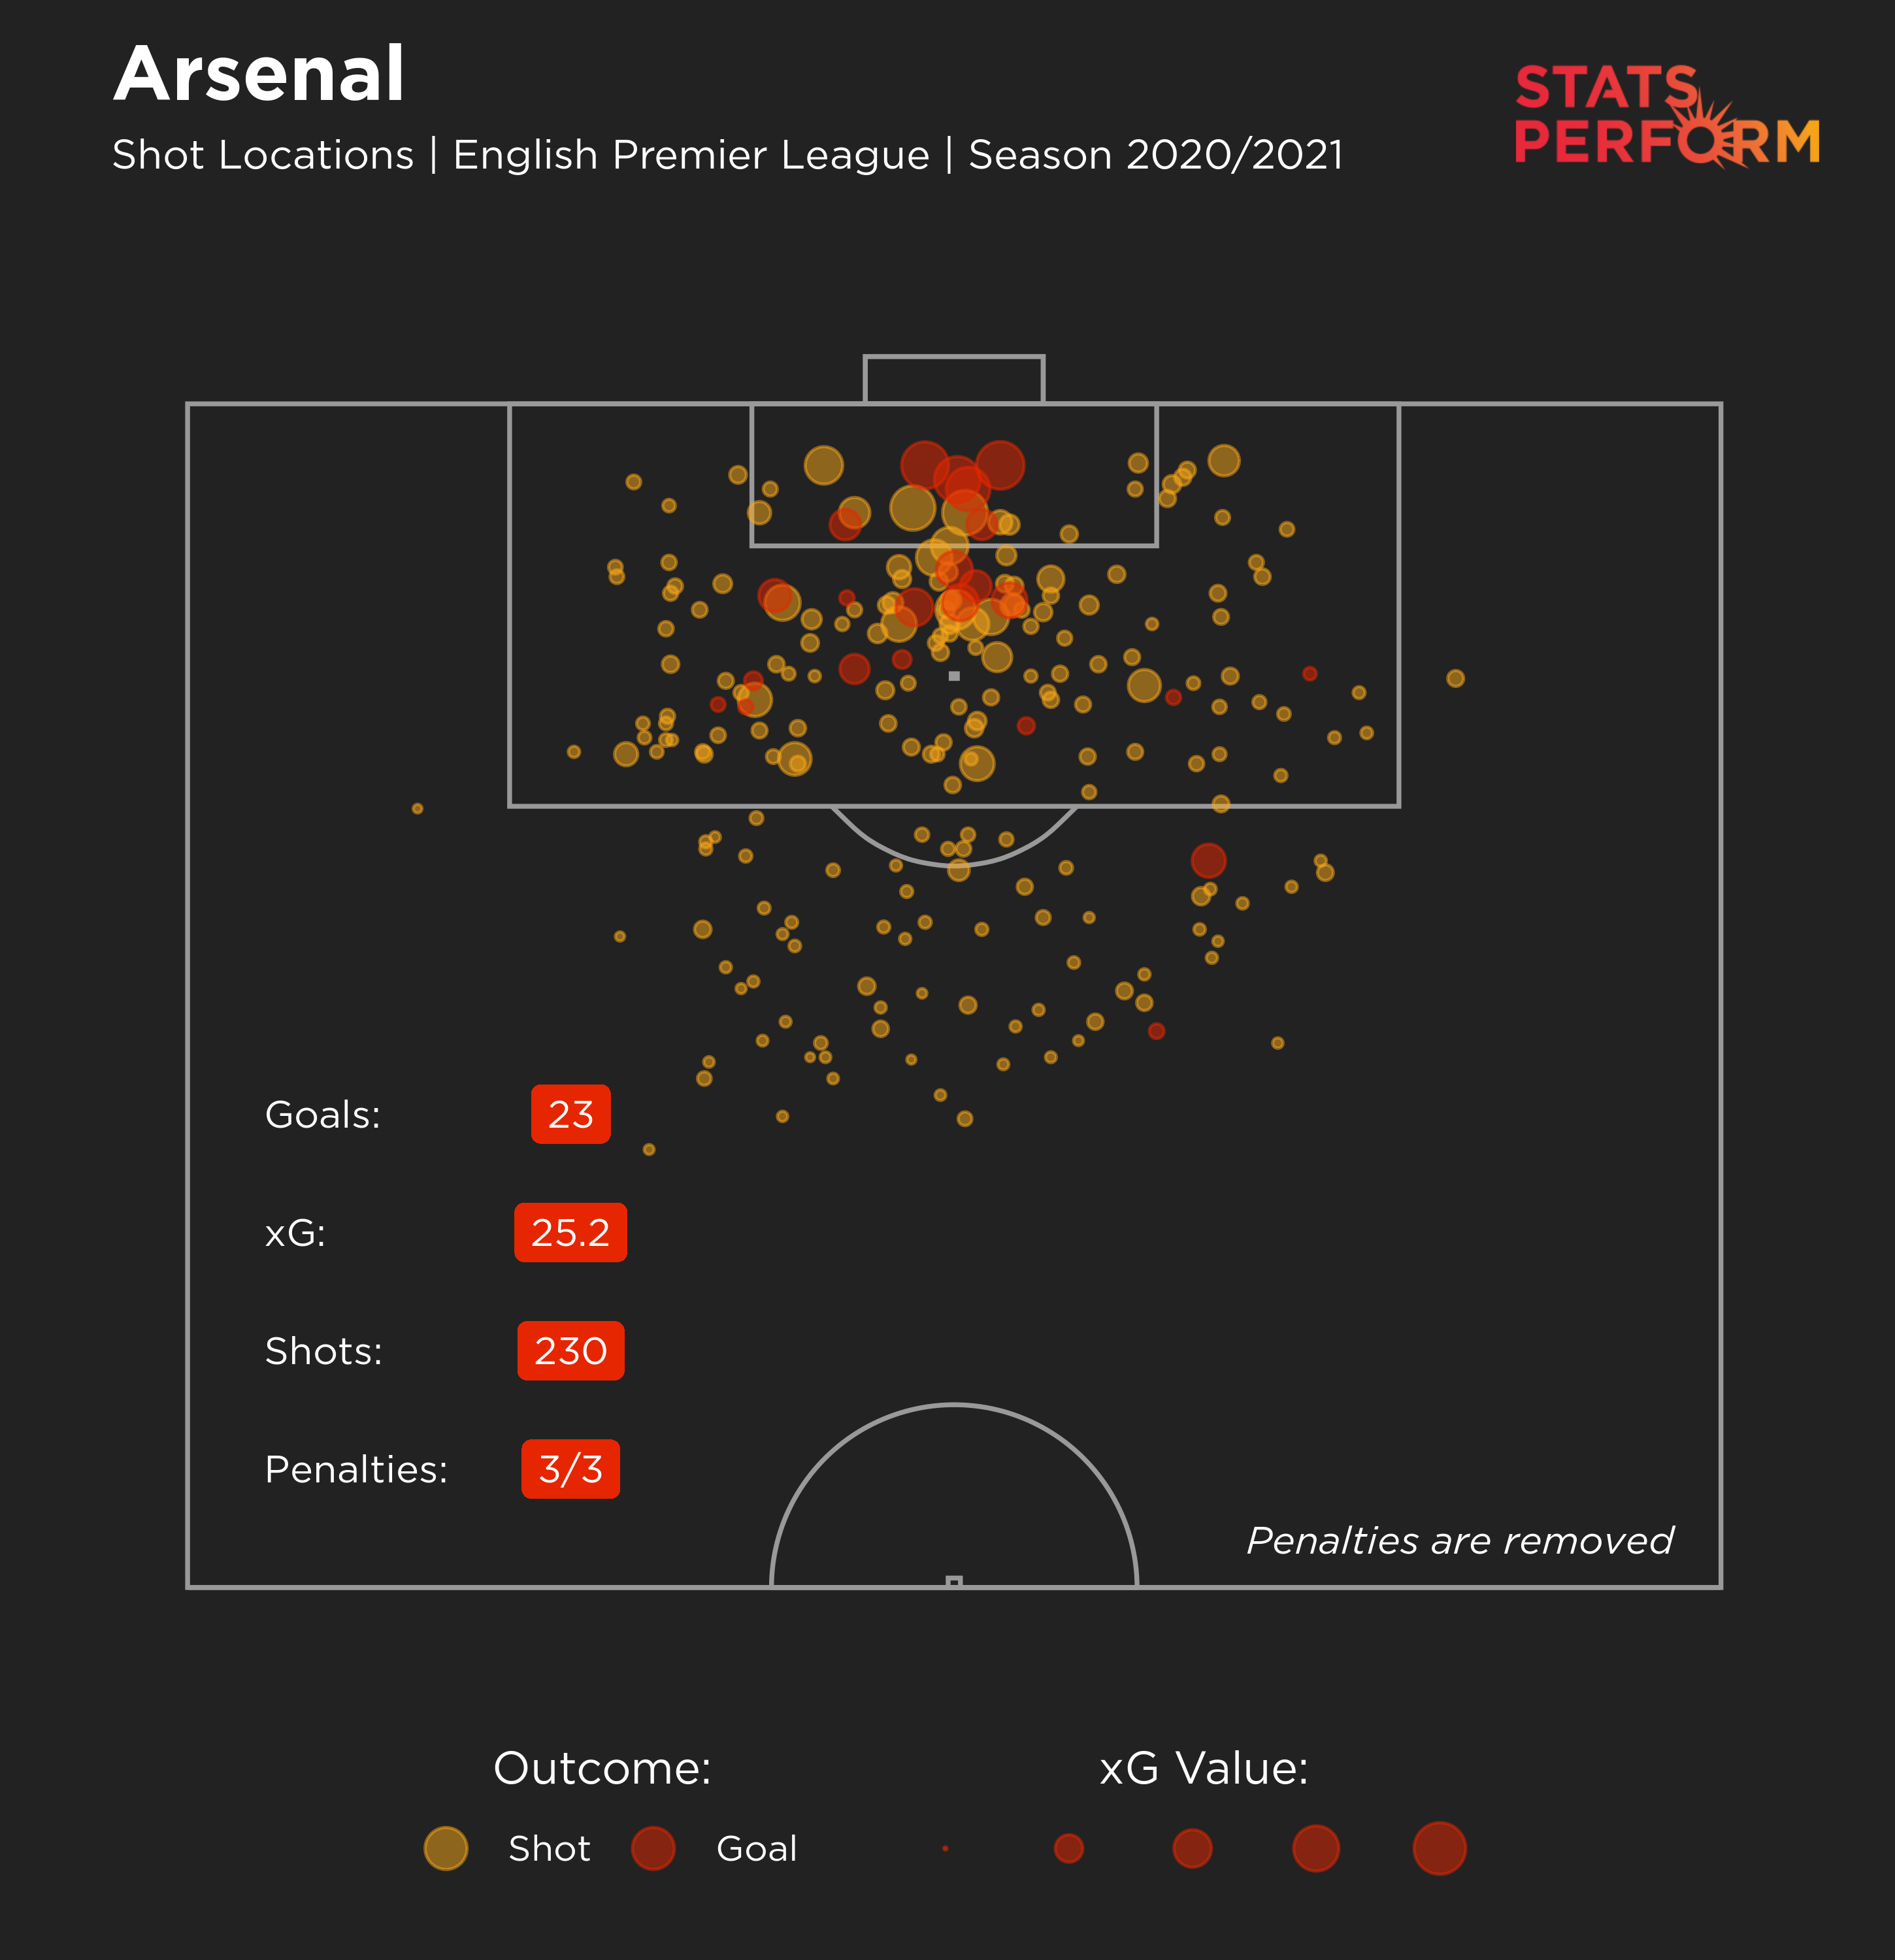 Arsenal's expected goals map for this season